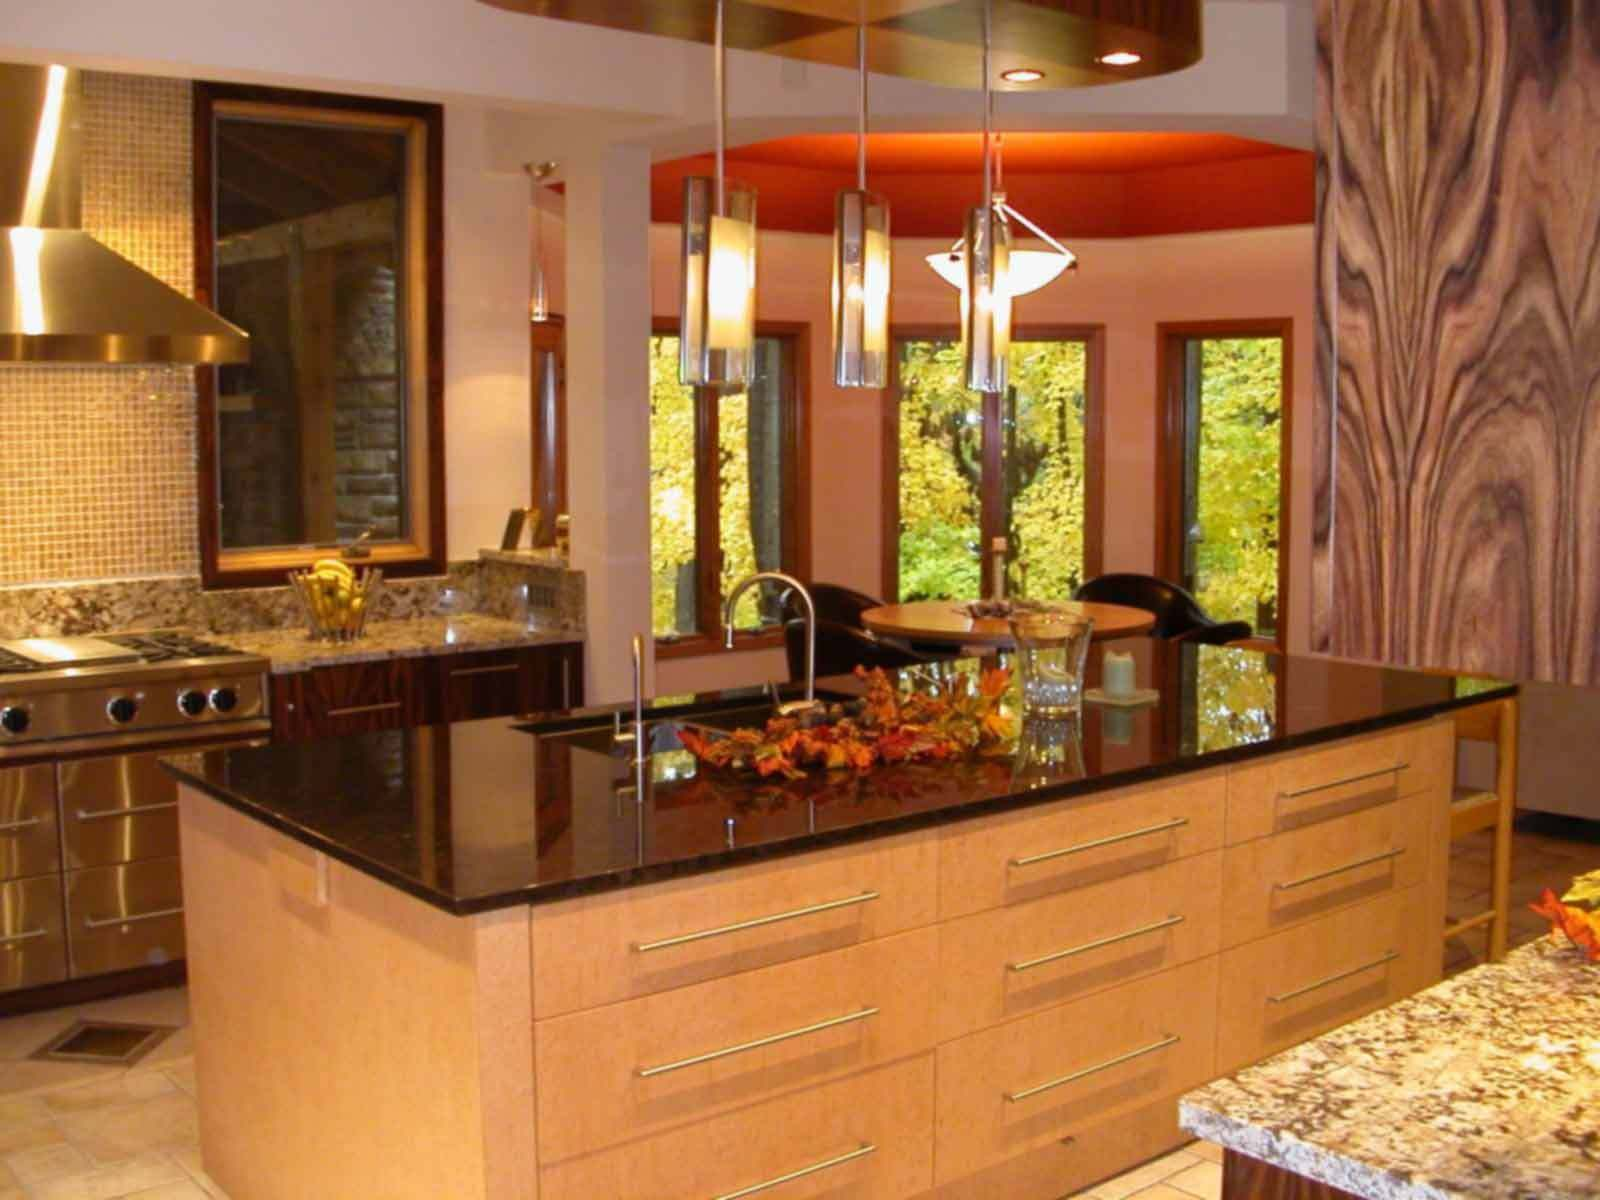 Kitchen Remodeling St Louis Remodelling Brilliant Aaa Remodeling Company  Kitchen & Bathroom Remodel Stlouis Mo Design Inspiration